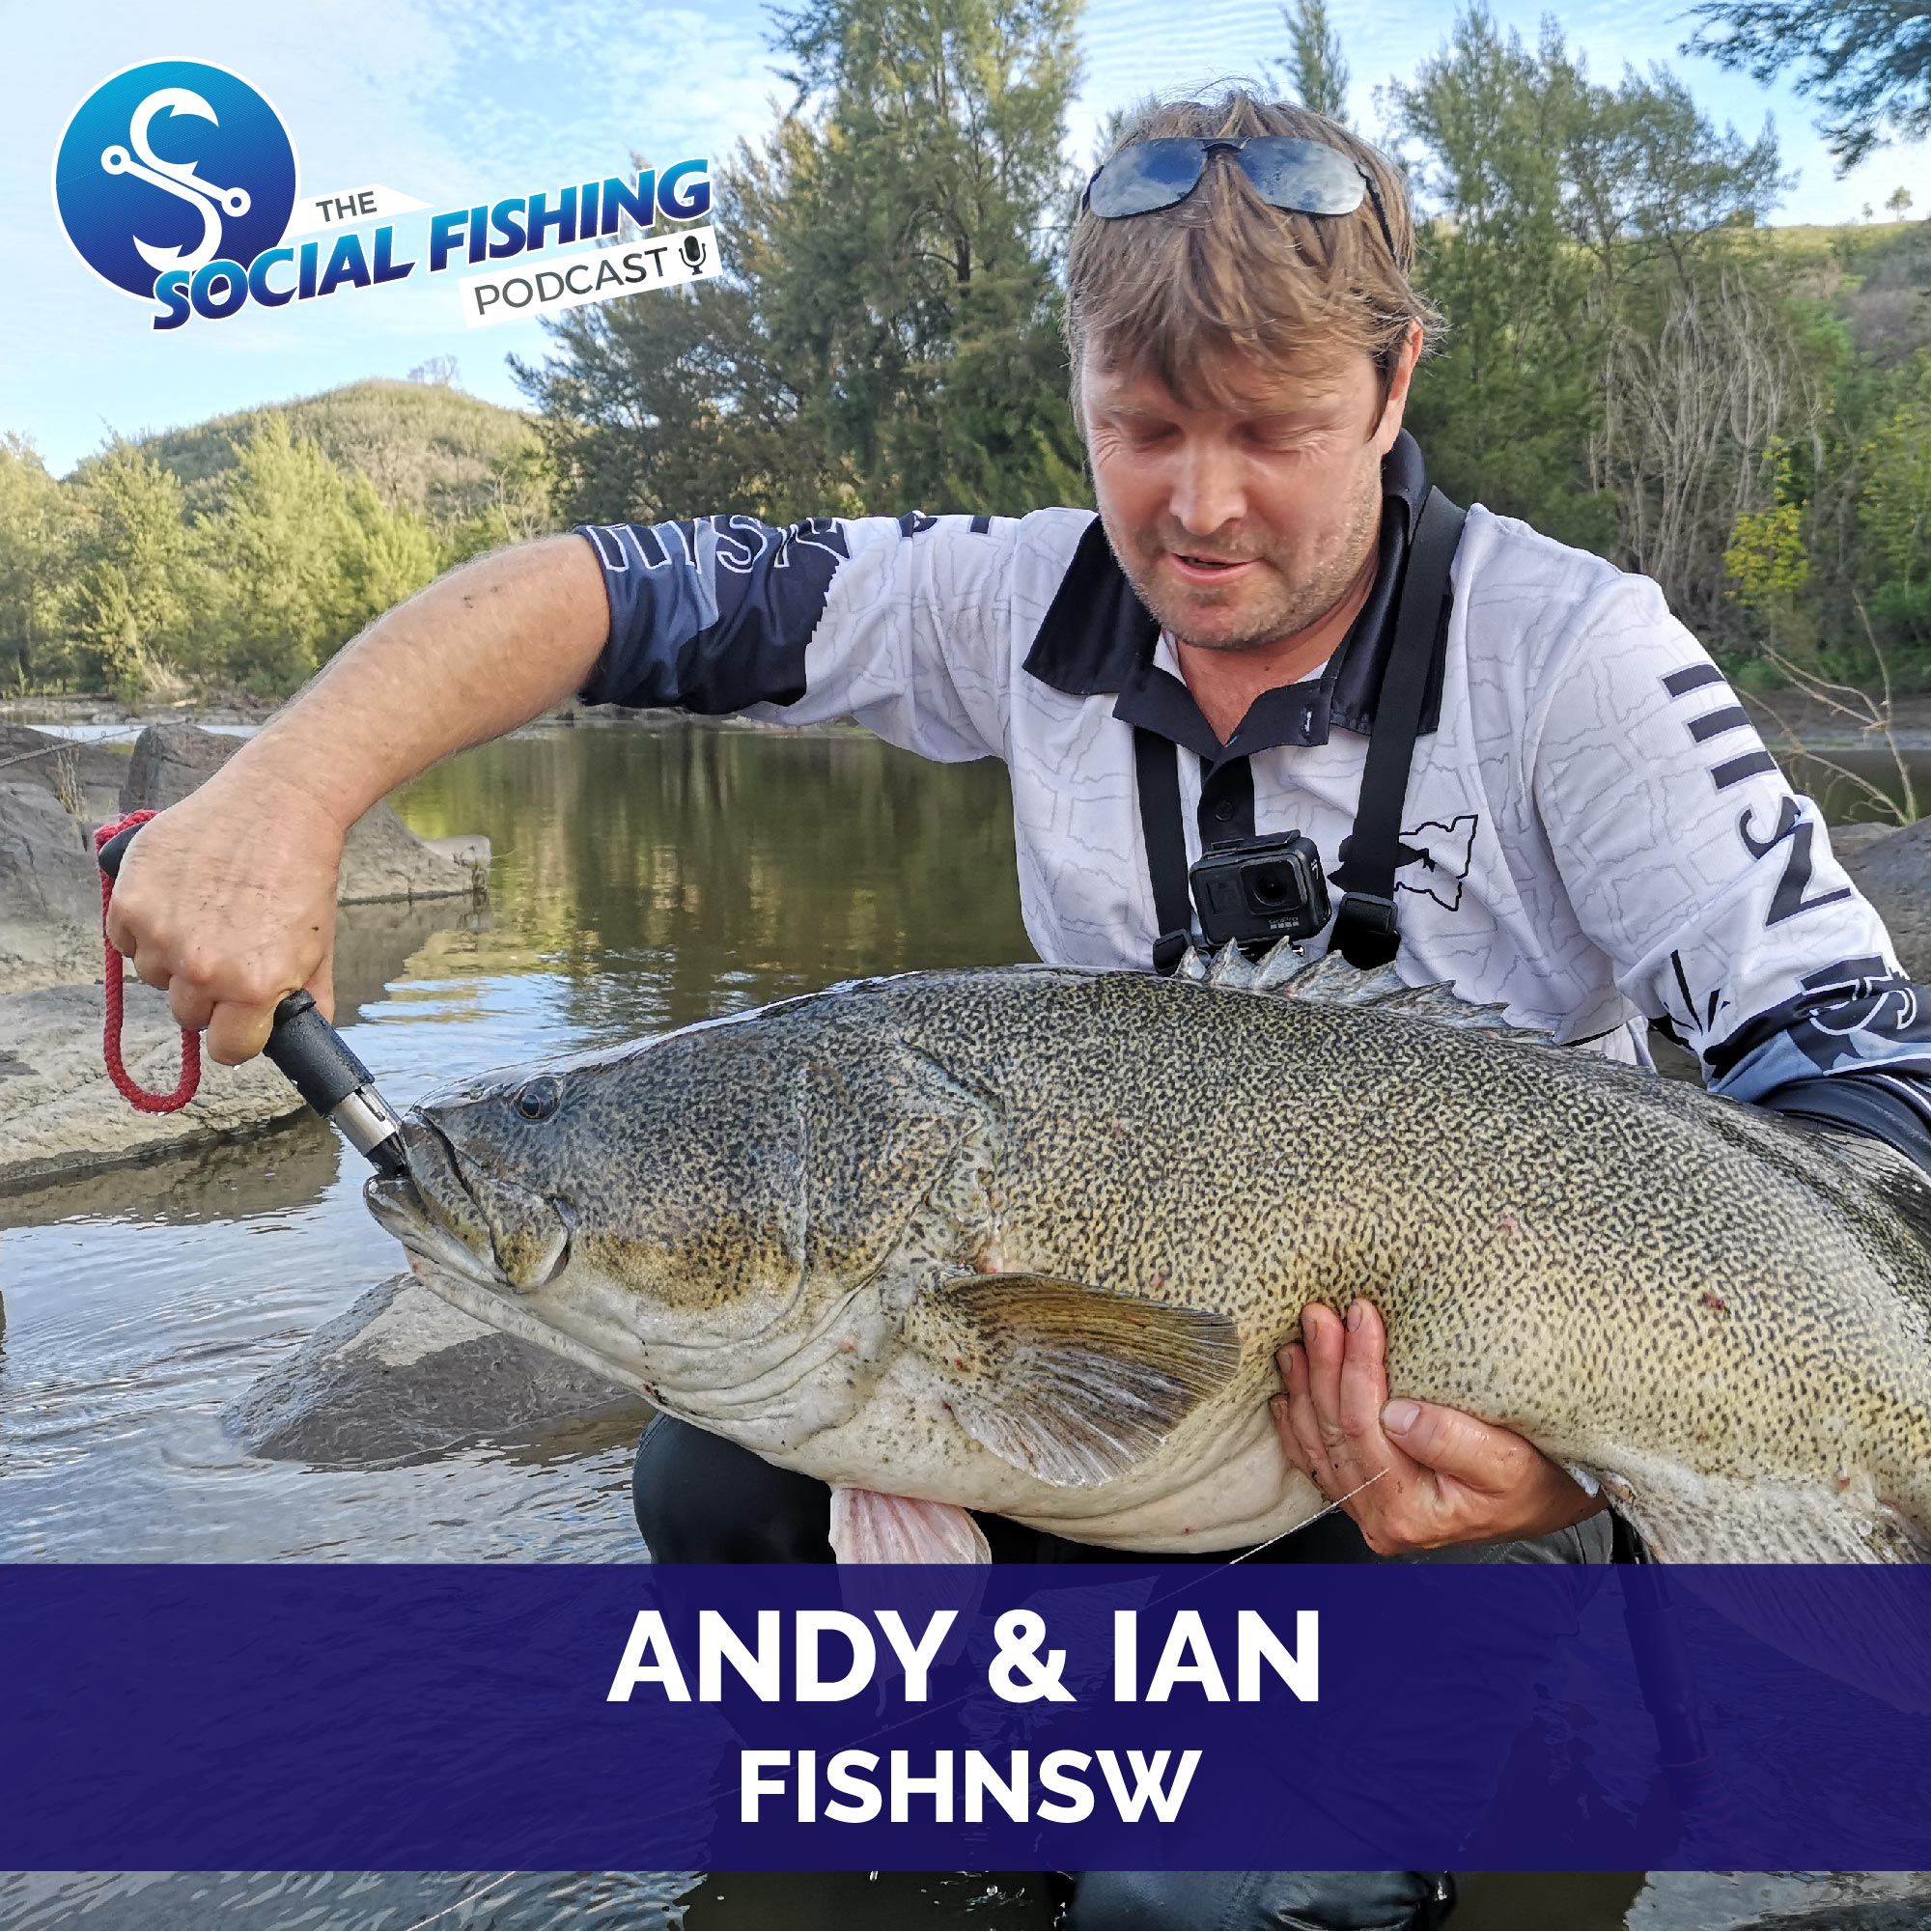 Ep 48 – Ian and Andy from FishNSW: Chasing Cod from the Bank and the Journey of FishNSW